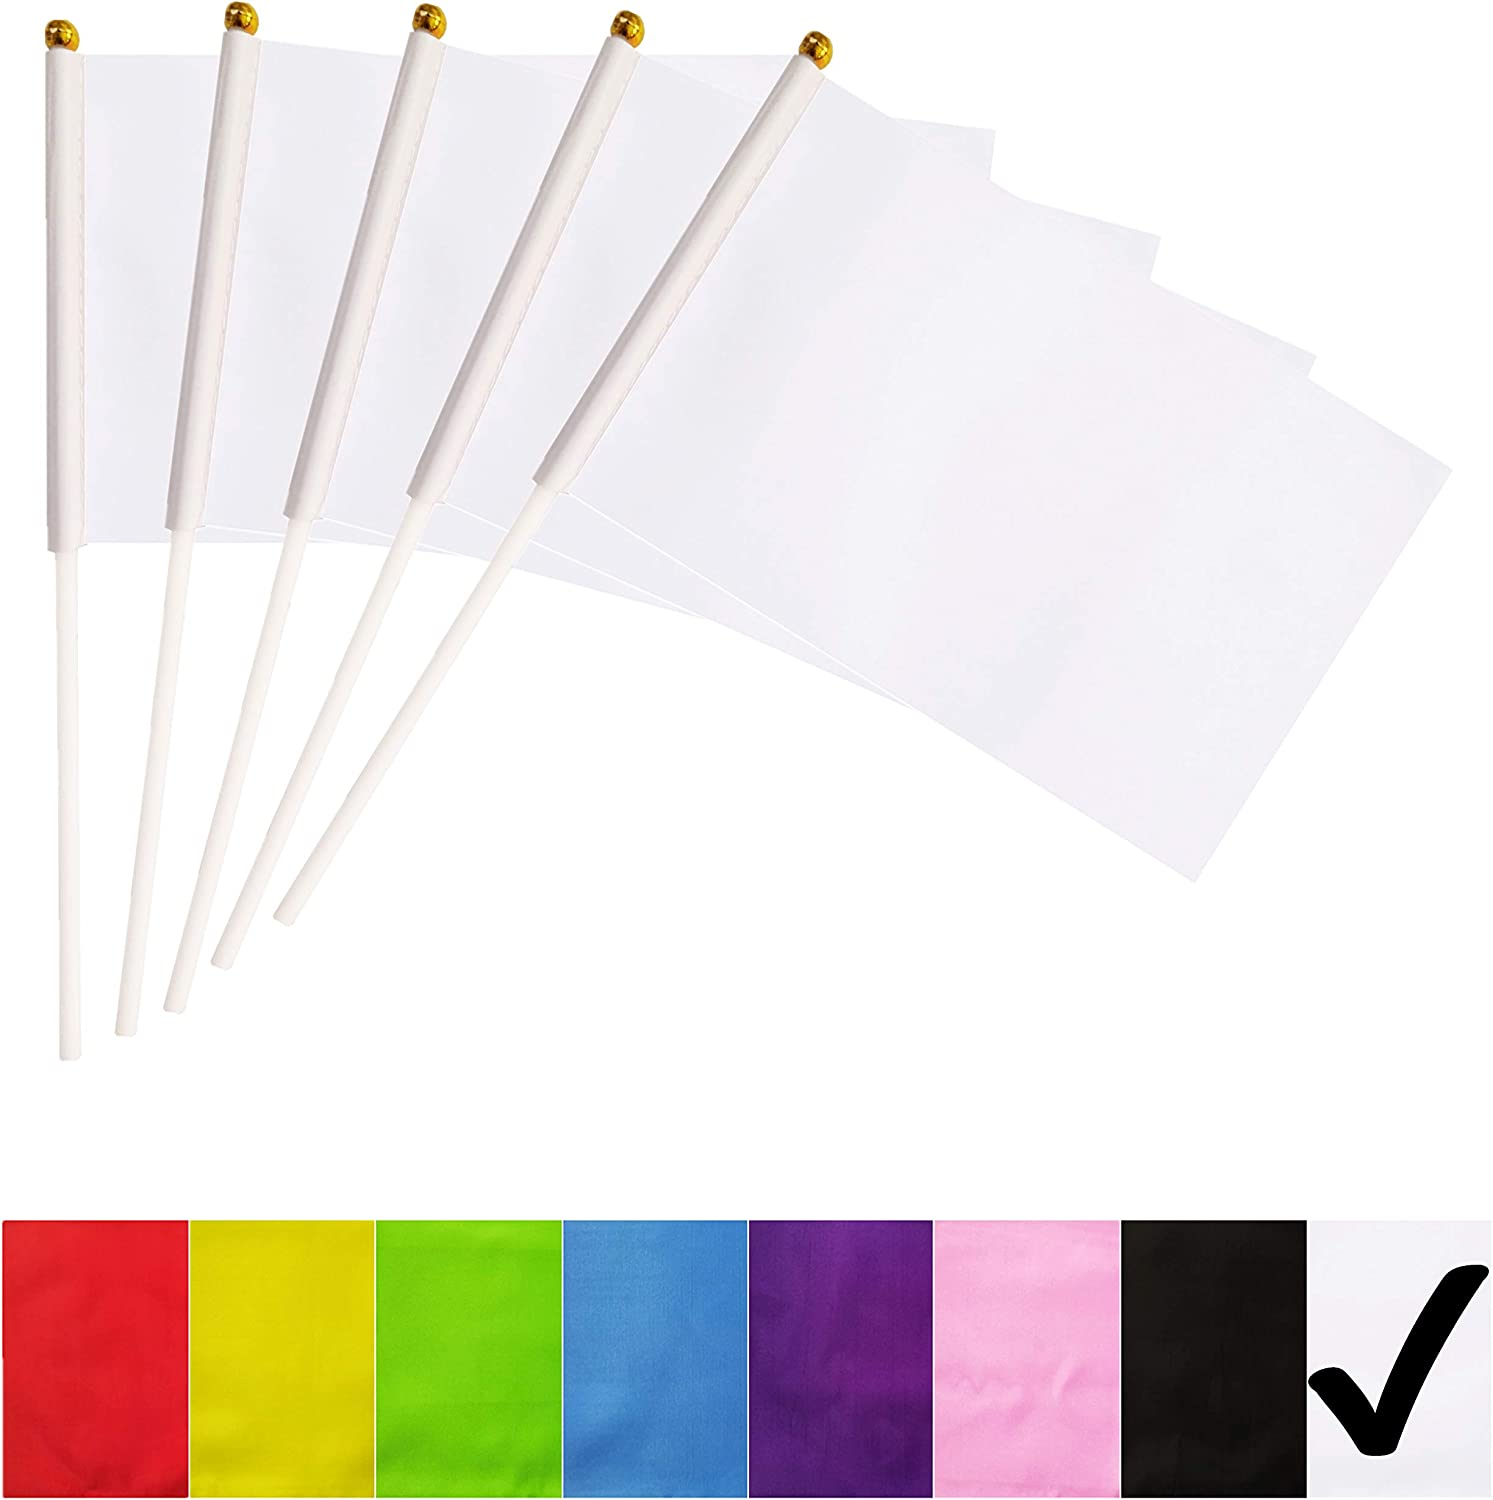 BCLin White Stick Flags,50 Pack Hand Held Small Mini Solid Flag On Stick,5x8 Inch Outdoor Decoration,Party Decorations,Supplies for Parades, Festival Events Celebration (White)